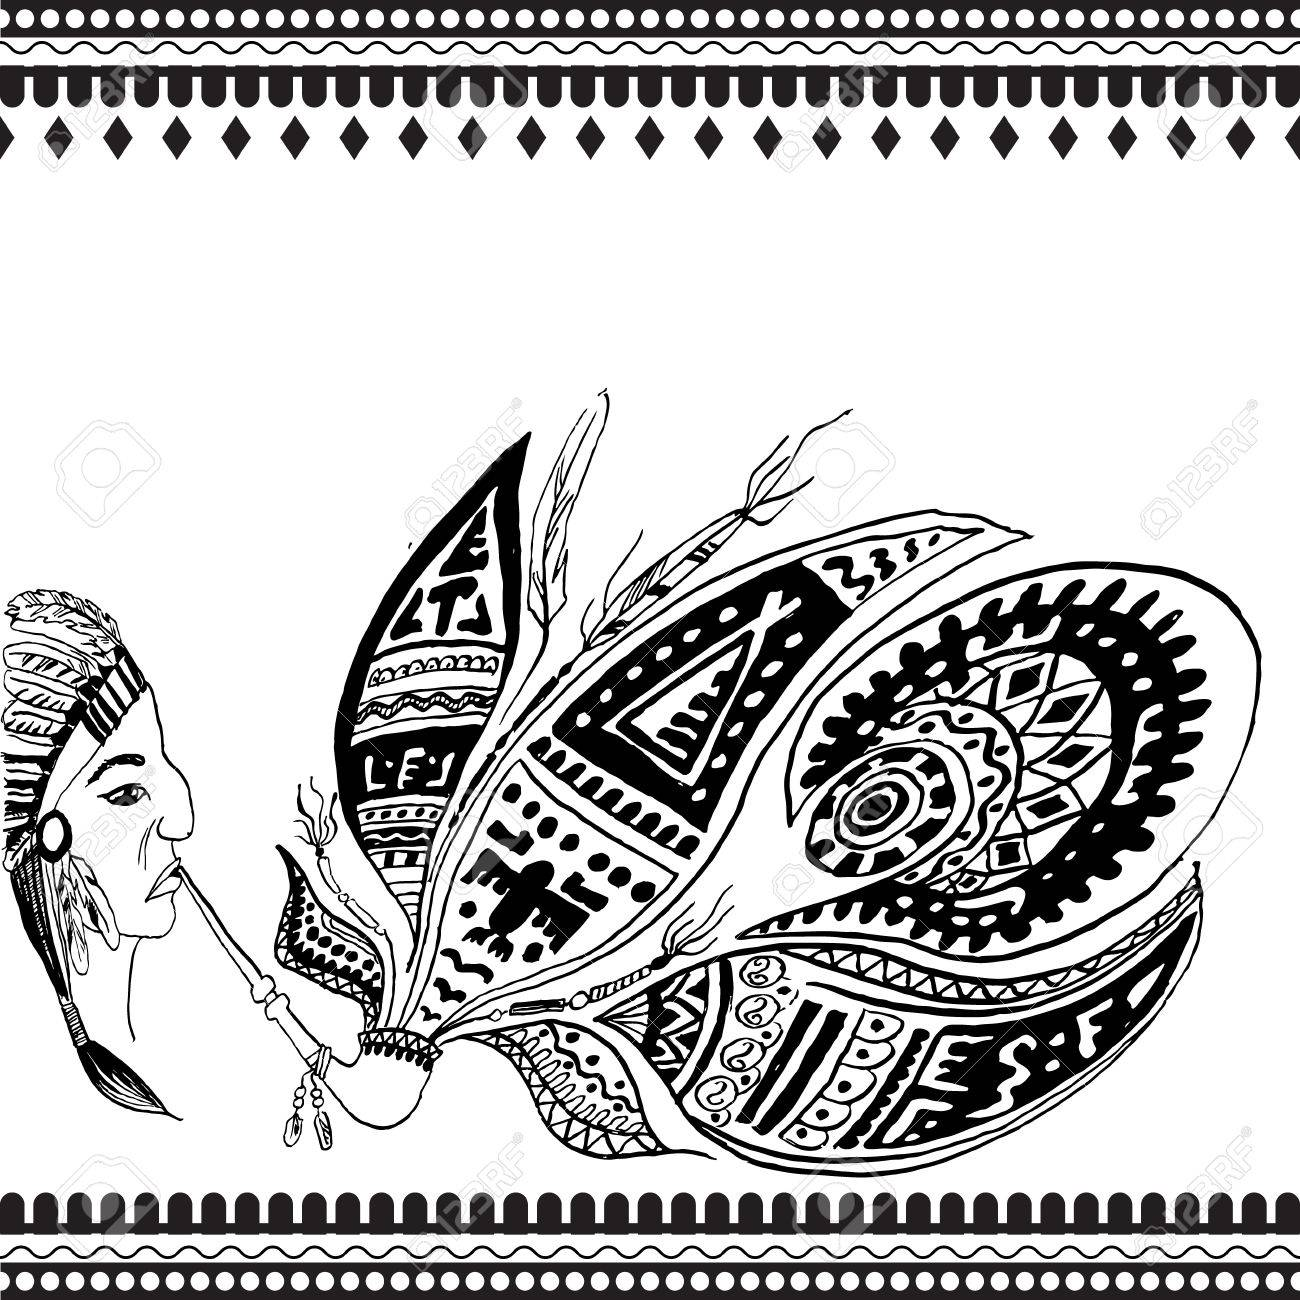 1300x1300 Vector Illustration. Indian Motifs (Redskin Man). Freehand Sketch